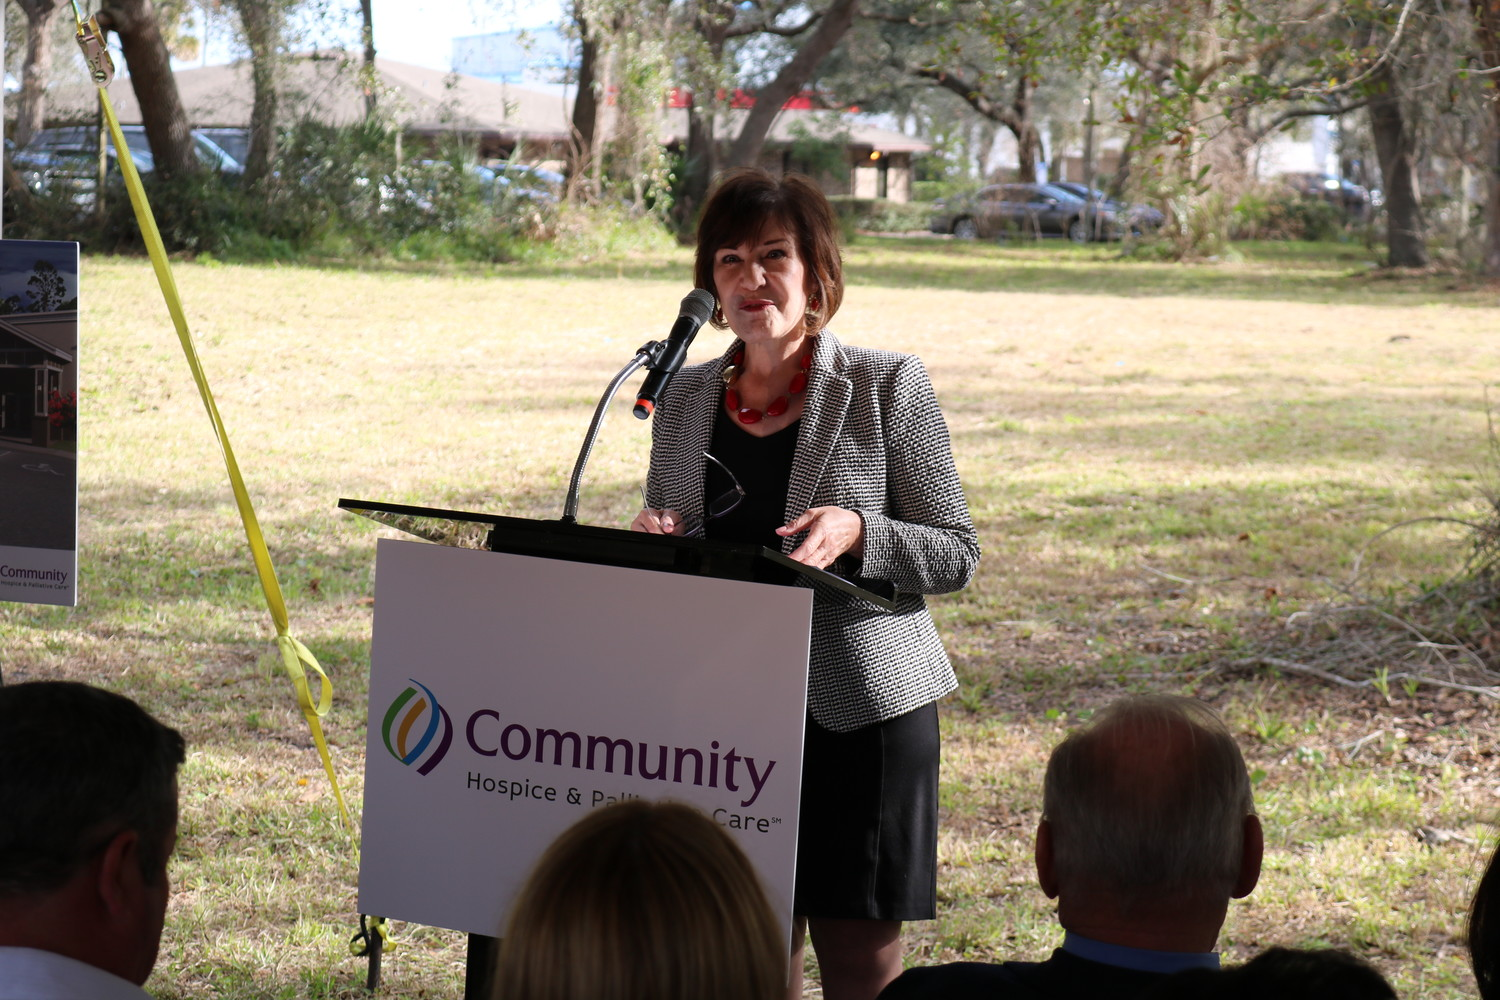 Susan Ponder-Stansel, president and CEO of Community Hospice & Palliative Care, addresses the crowd at the groundbreaking ceremony.